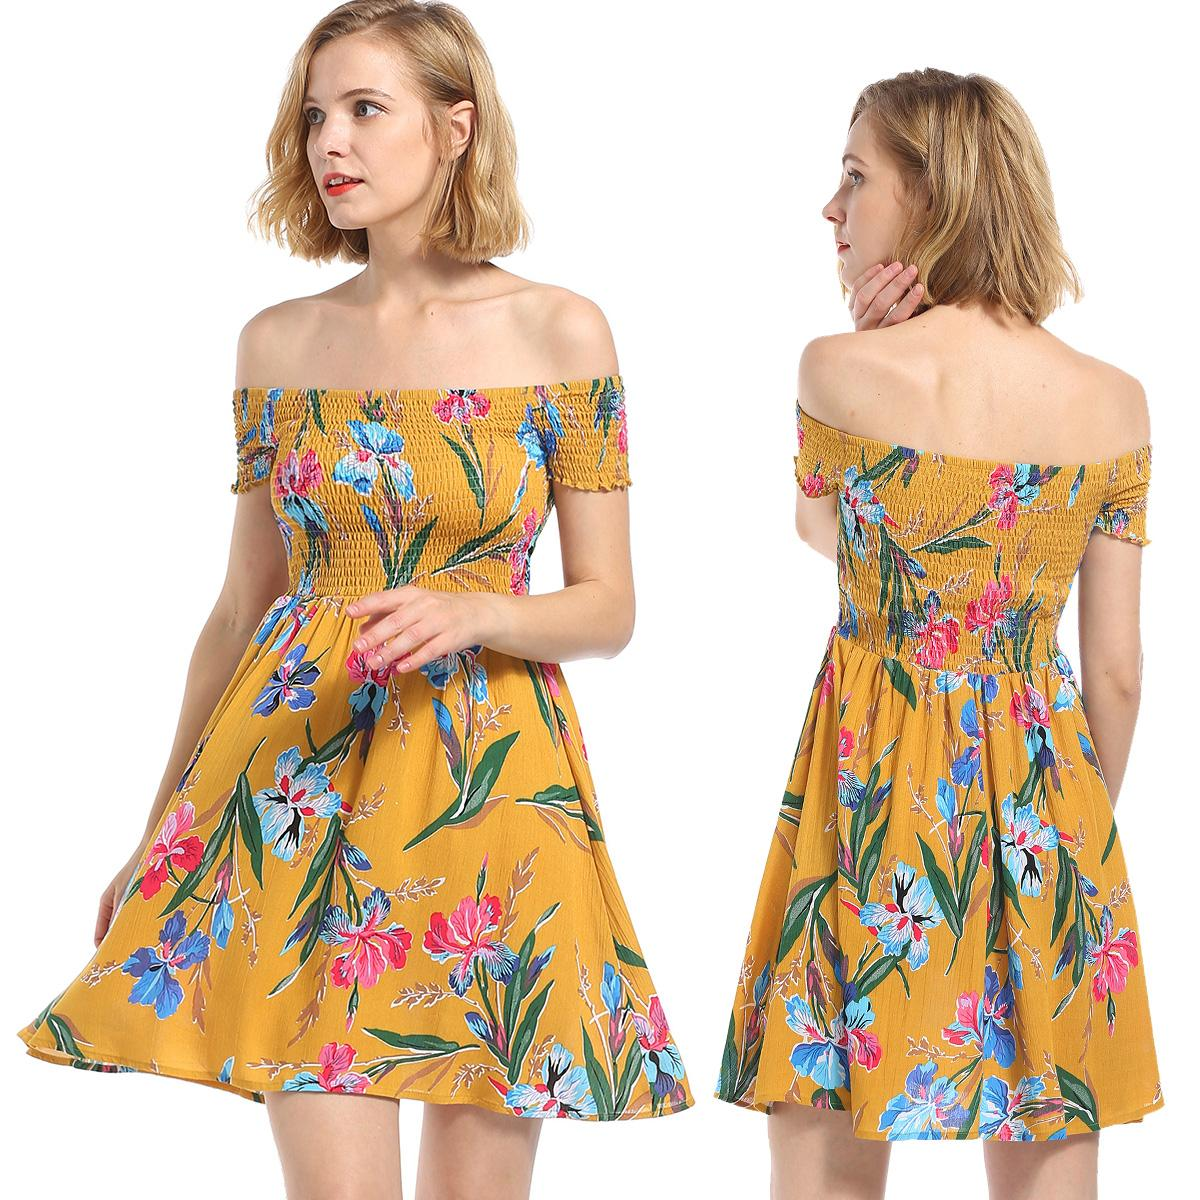 36e5d47a5172 Summer Women Sexy Boho Style Chiffon Off Shoulder Yellow Floral Print Short  Sleeve Beach Holiday Empire Waist Mini A Line Dress Affordable Evening  Dresses ...